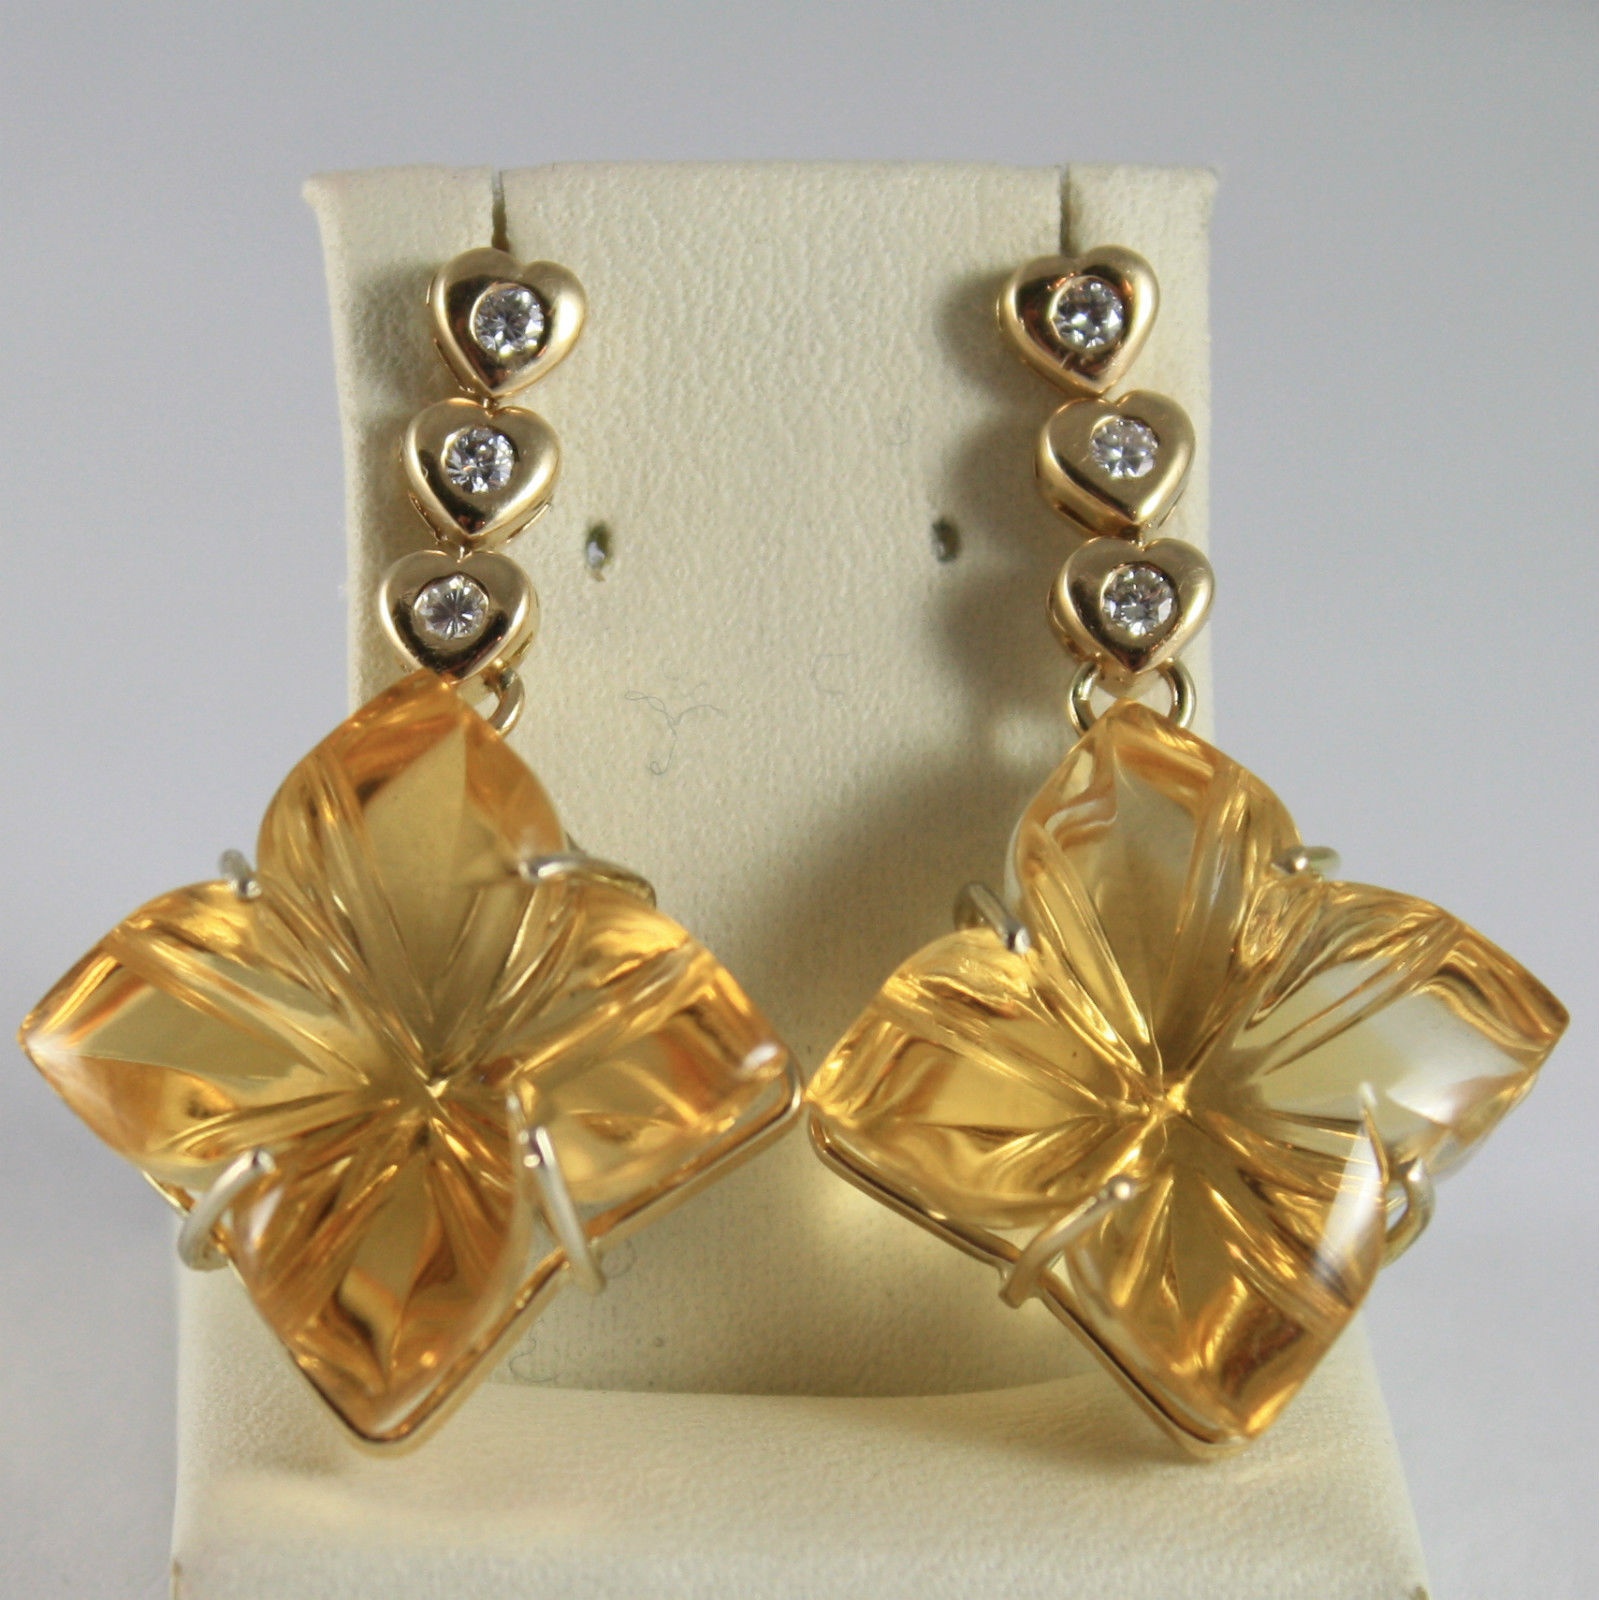 SOLID 18K YELLOW GOLD EARRINGS, HEART, DIAMOND, CITRINE FLOWER CUT MADE IN ITALY